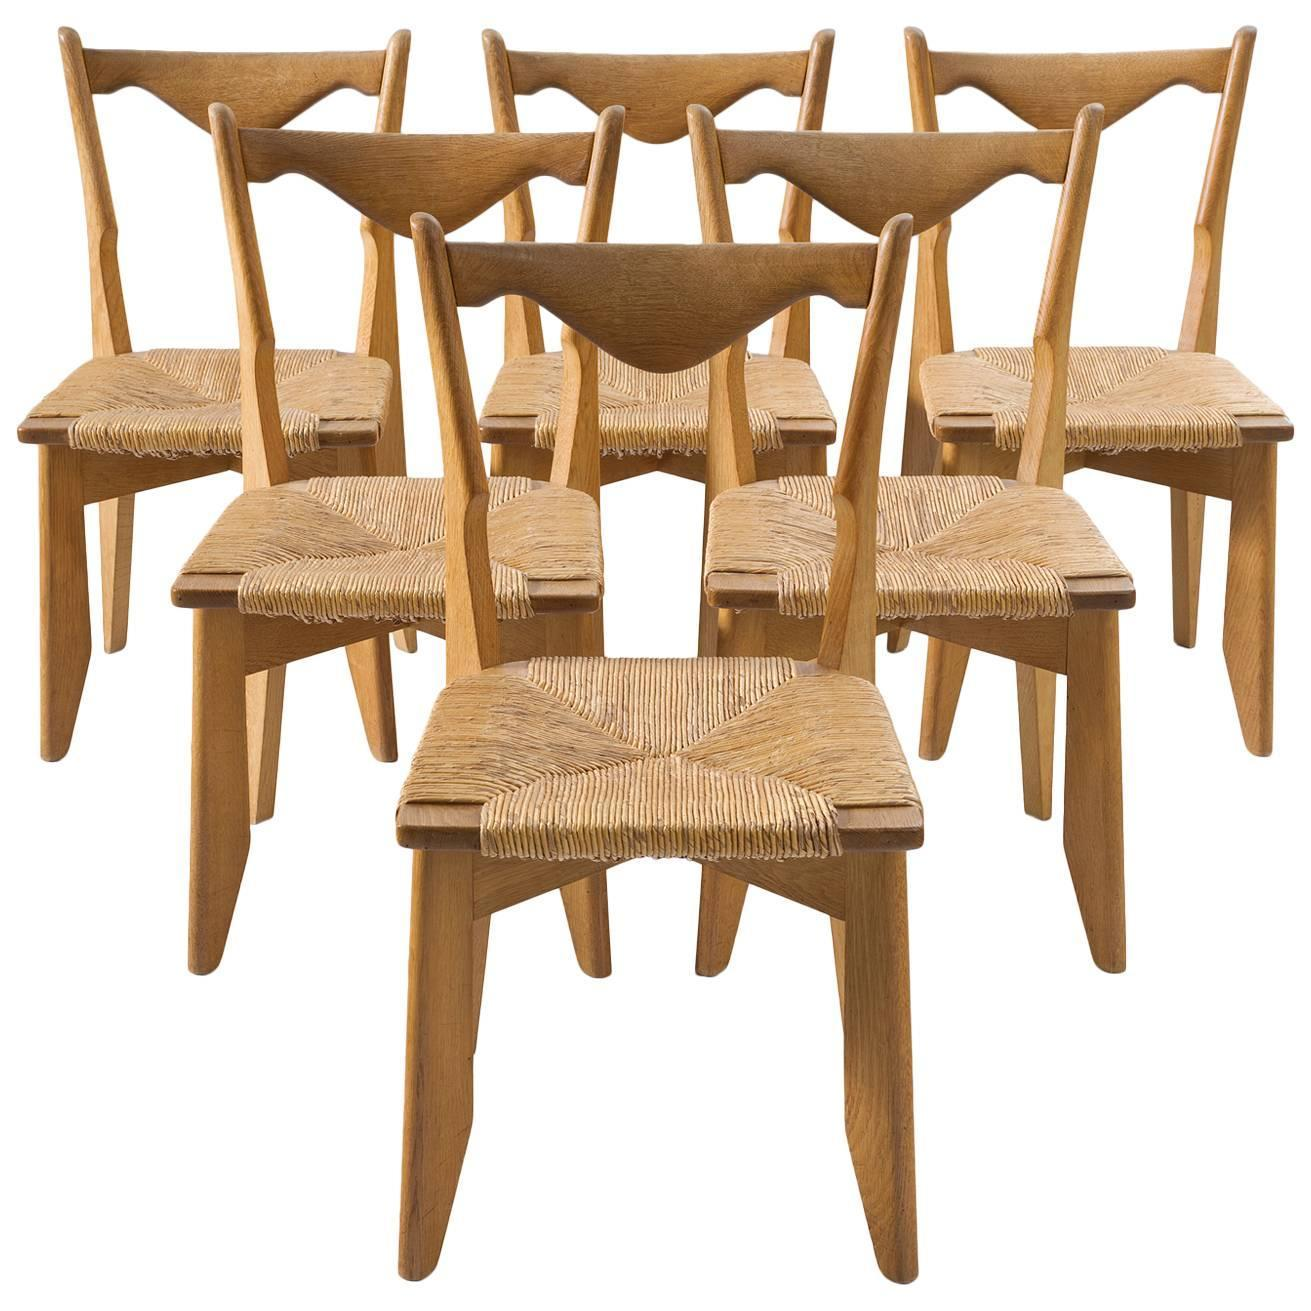 Of four chairs in oak and patinated cognac leather for sale at 1stdibs - Guillerme And Chambron Set Of Six Dining Chairs In Oak And Woven Seating For Sale At 1stdibs